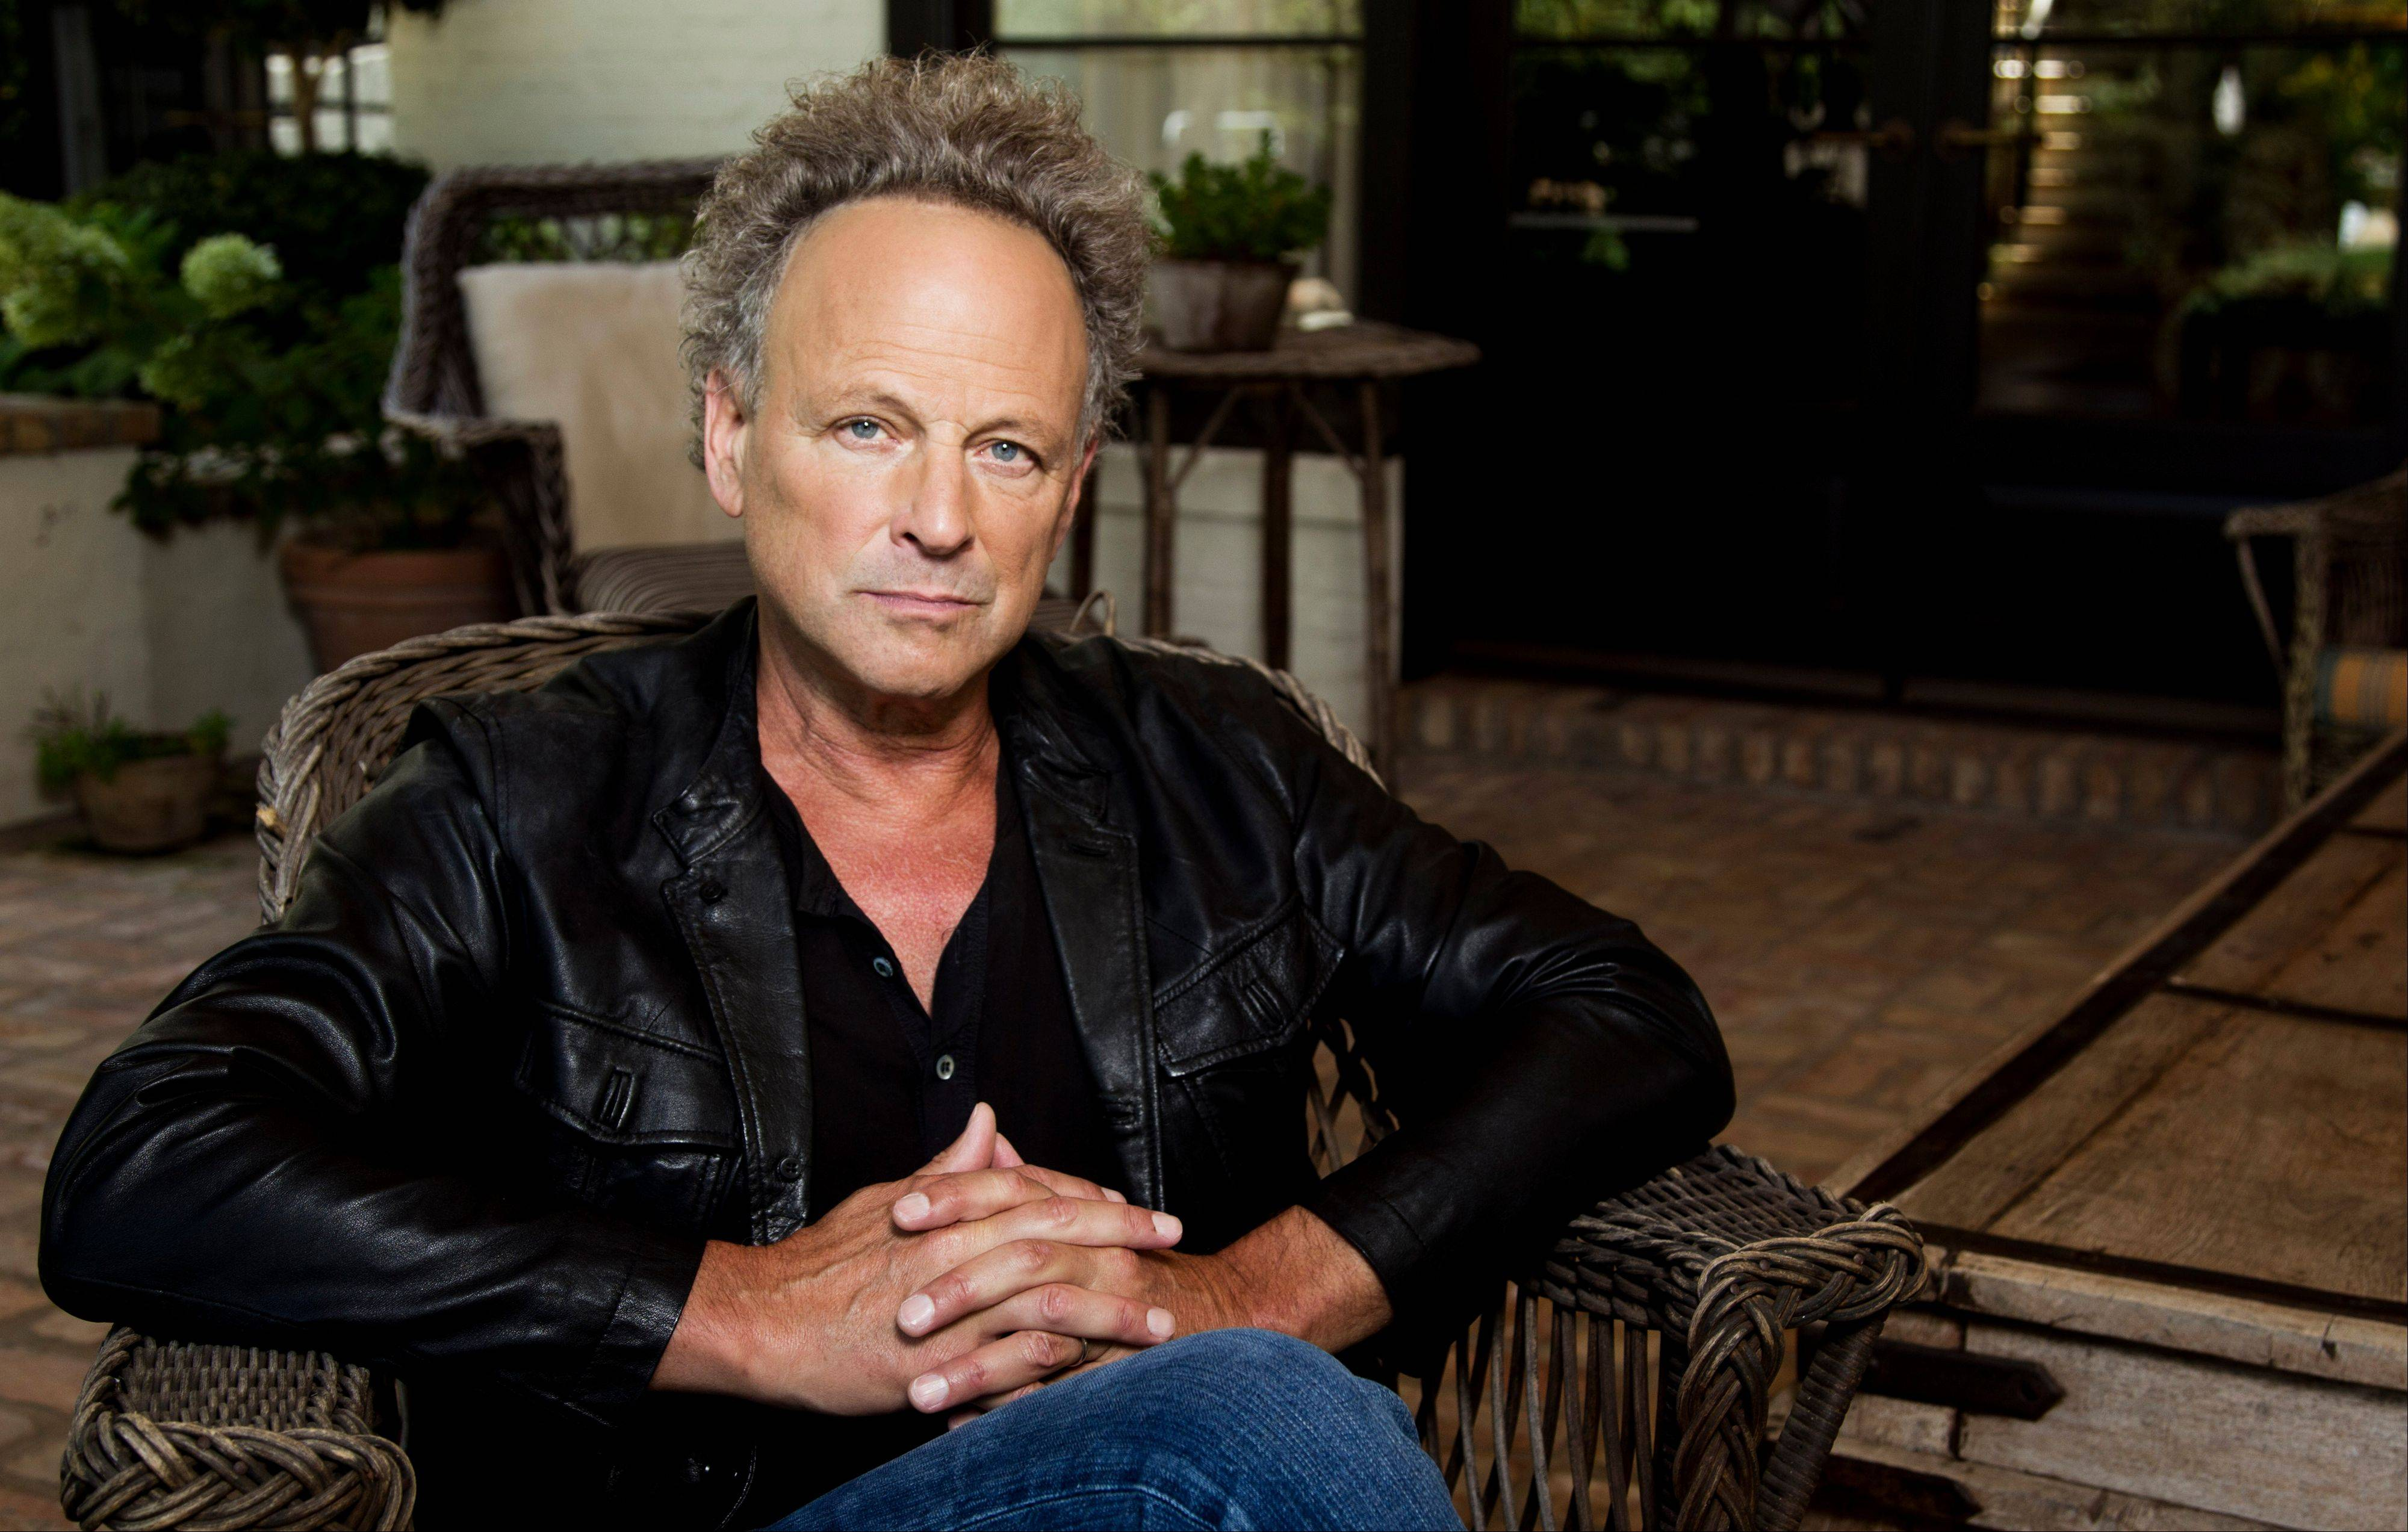 Lindsey Buckingham performs a solo concert at the Arcada Theatre in St. Charles on Tuesday, Sept. 4.